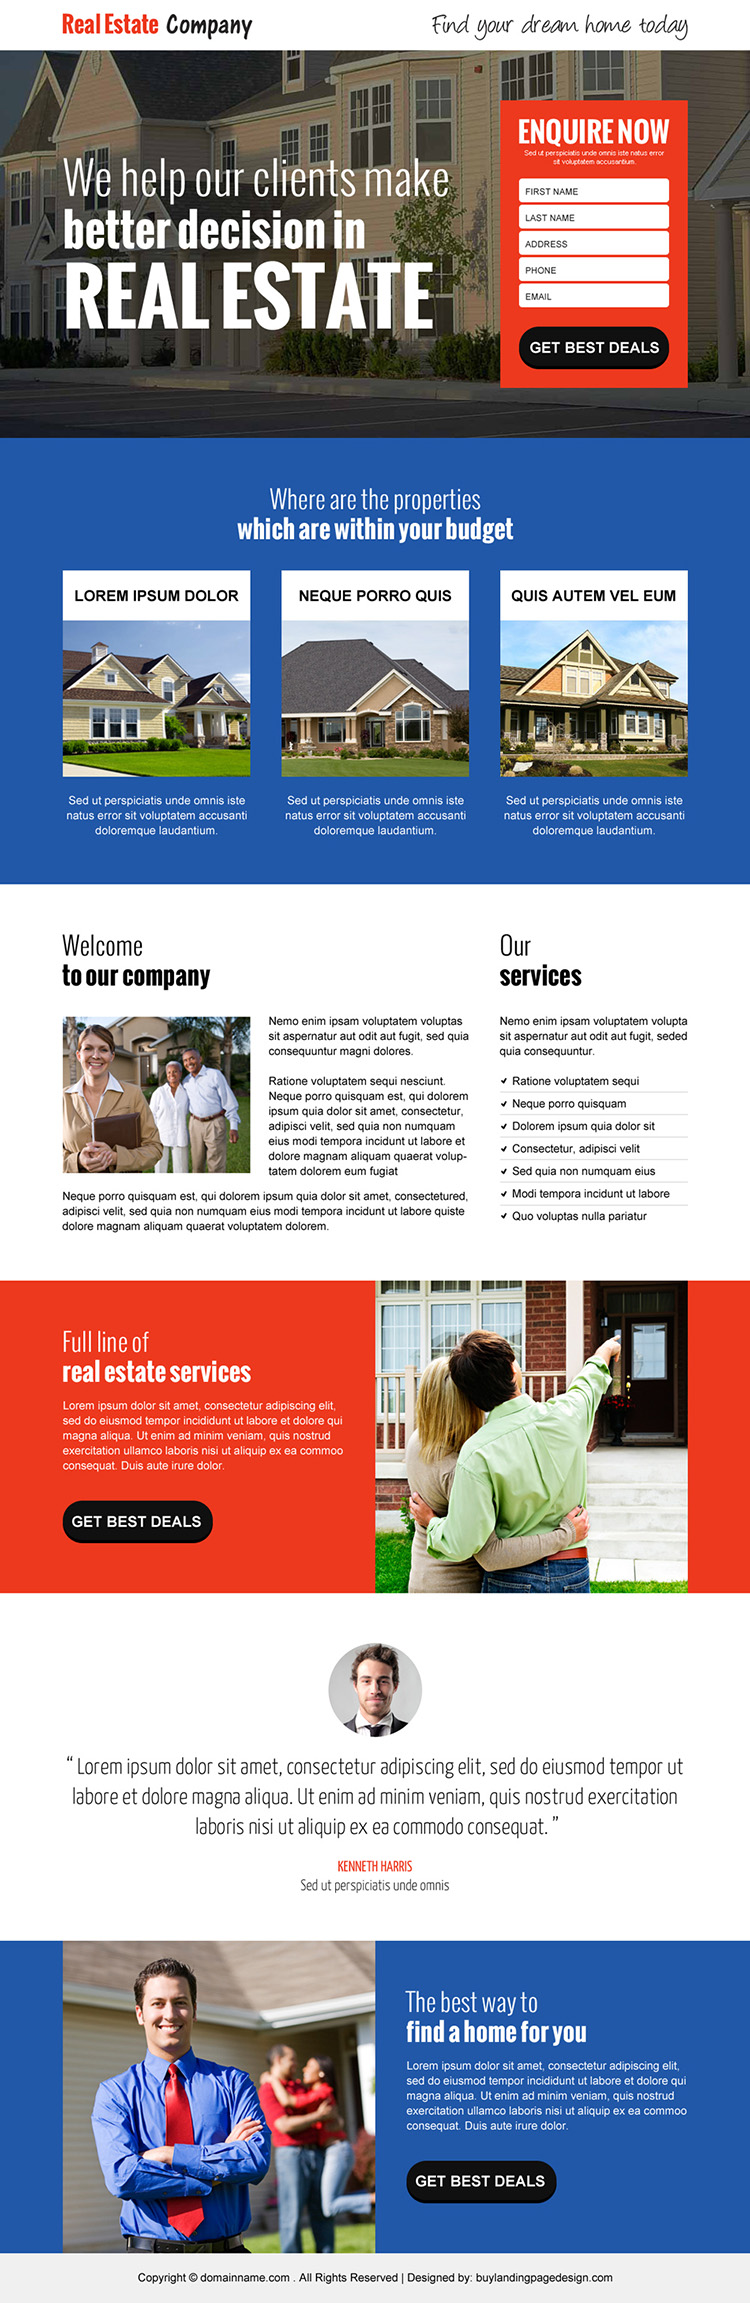 best real estate company responsive landing page design